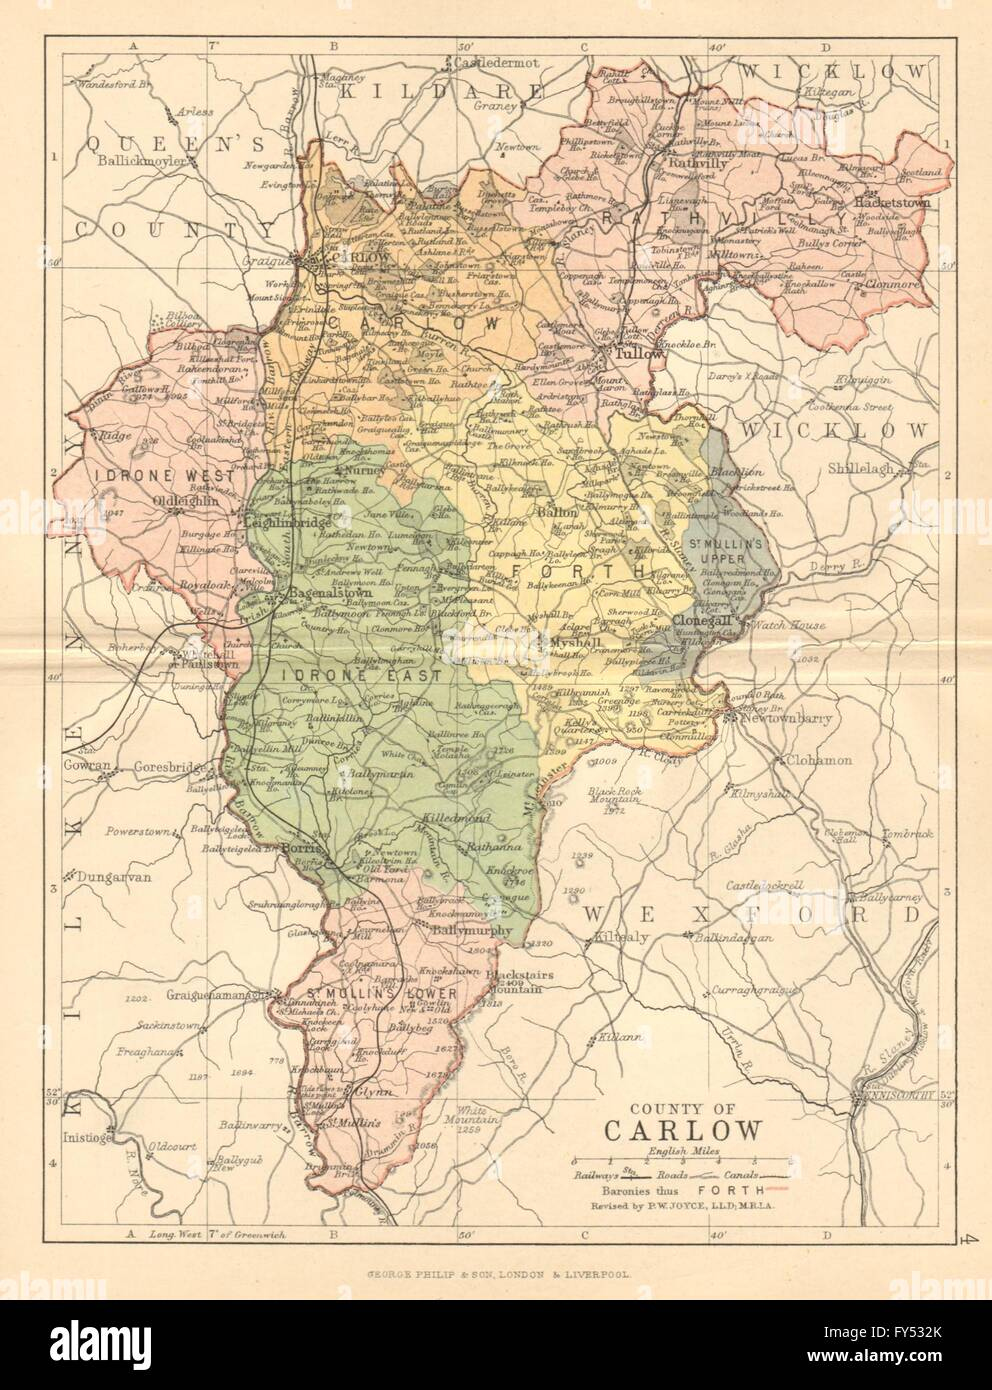 County Carlow Antique County Map Leinster Ireland Bartholomew